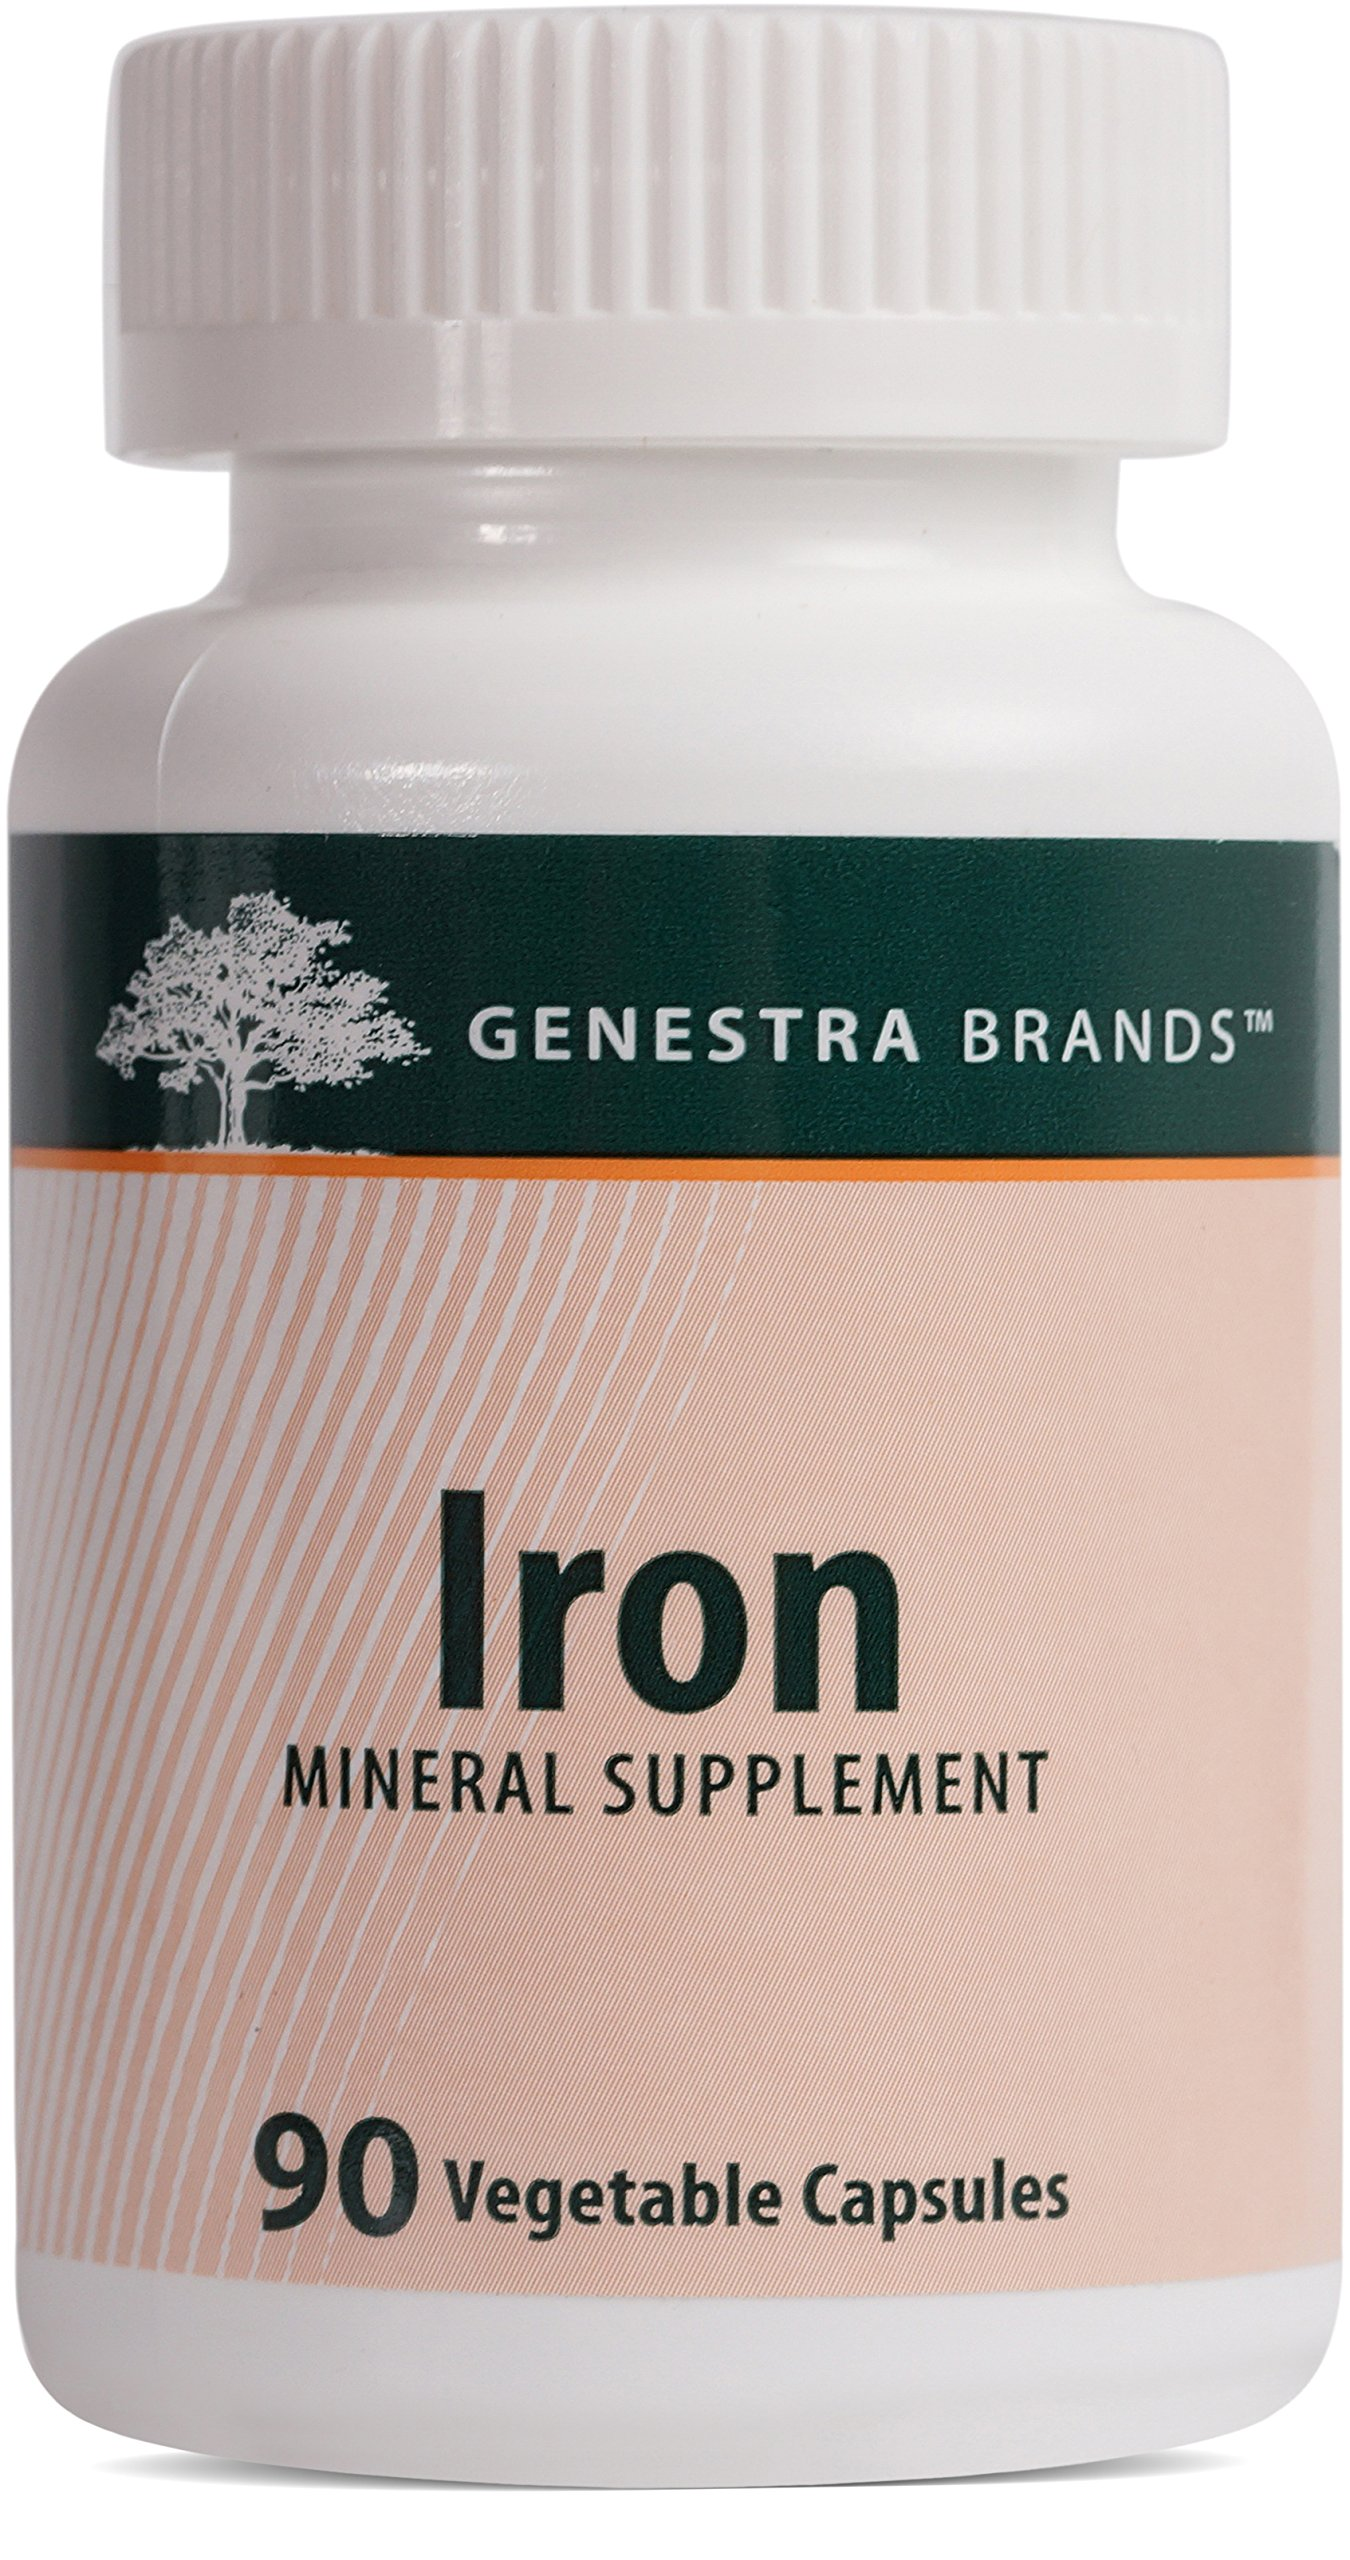 Genestra Brands - Iron - Mineral Supplement - 90 Vegetable Capsules